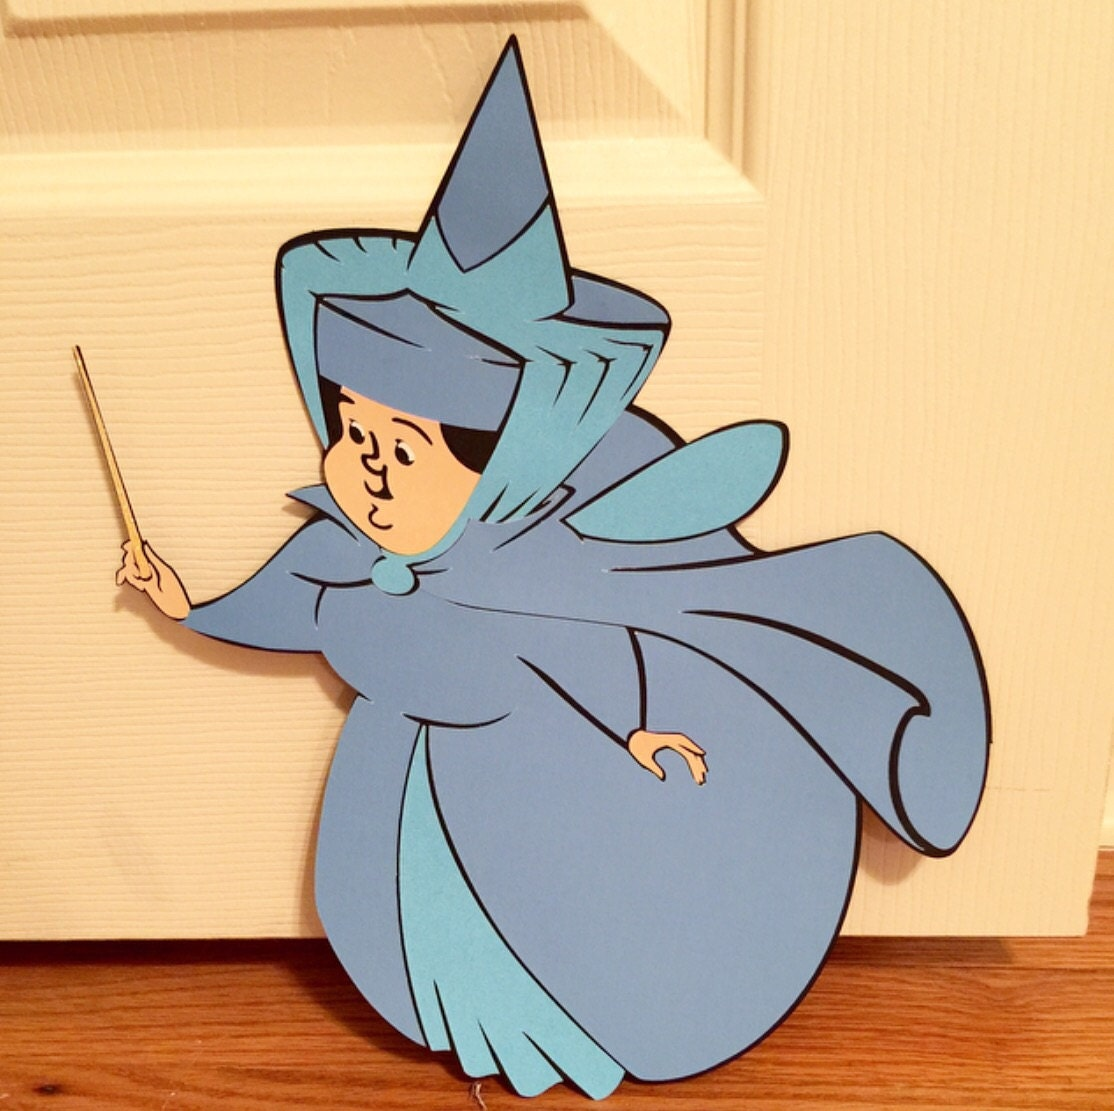 1ft Sleeping Beauty Disney Party Decoration Merrywhether